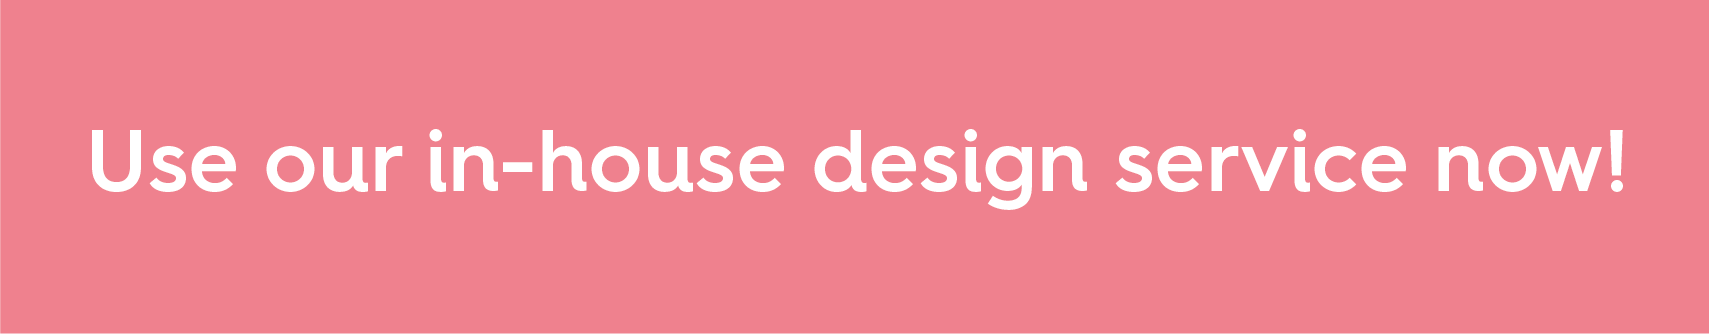 Use our in-house design service now